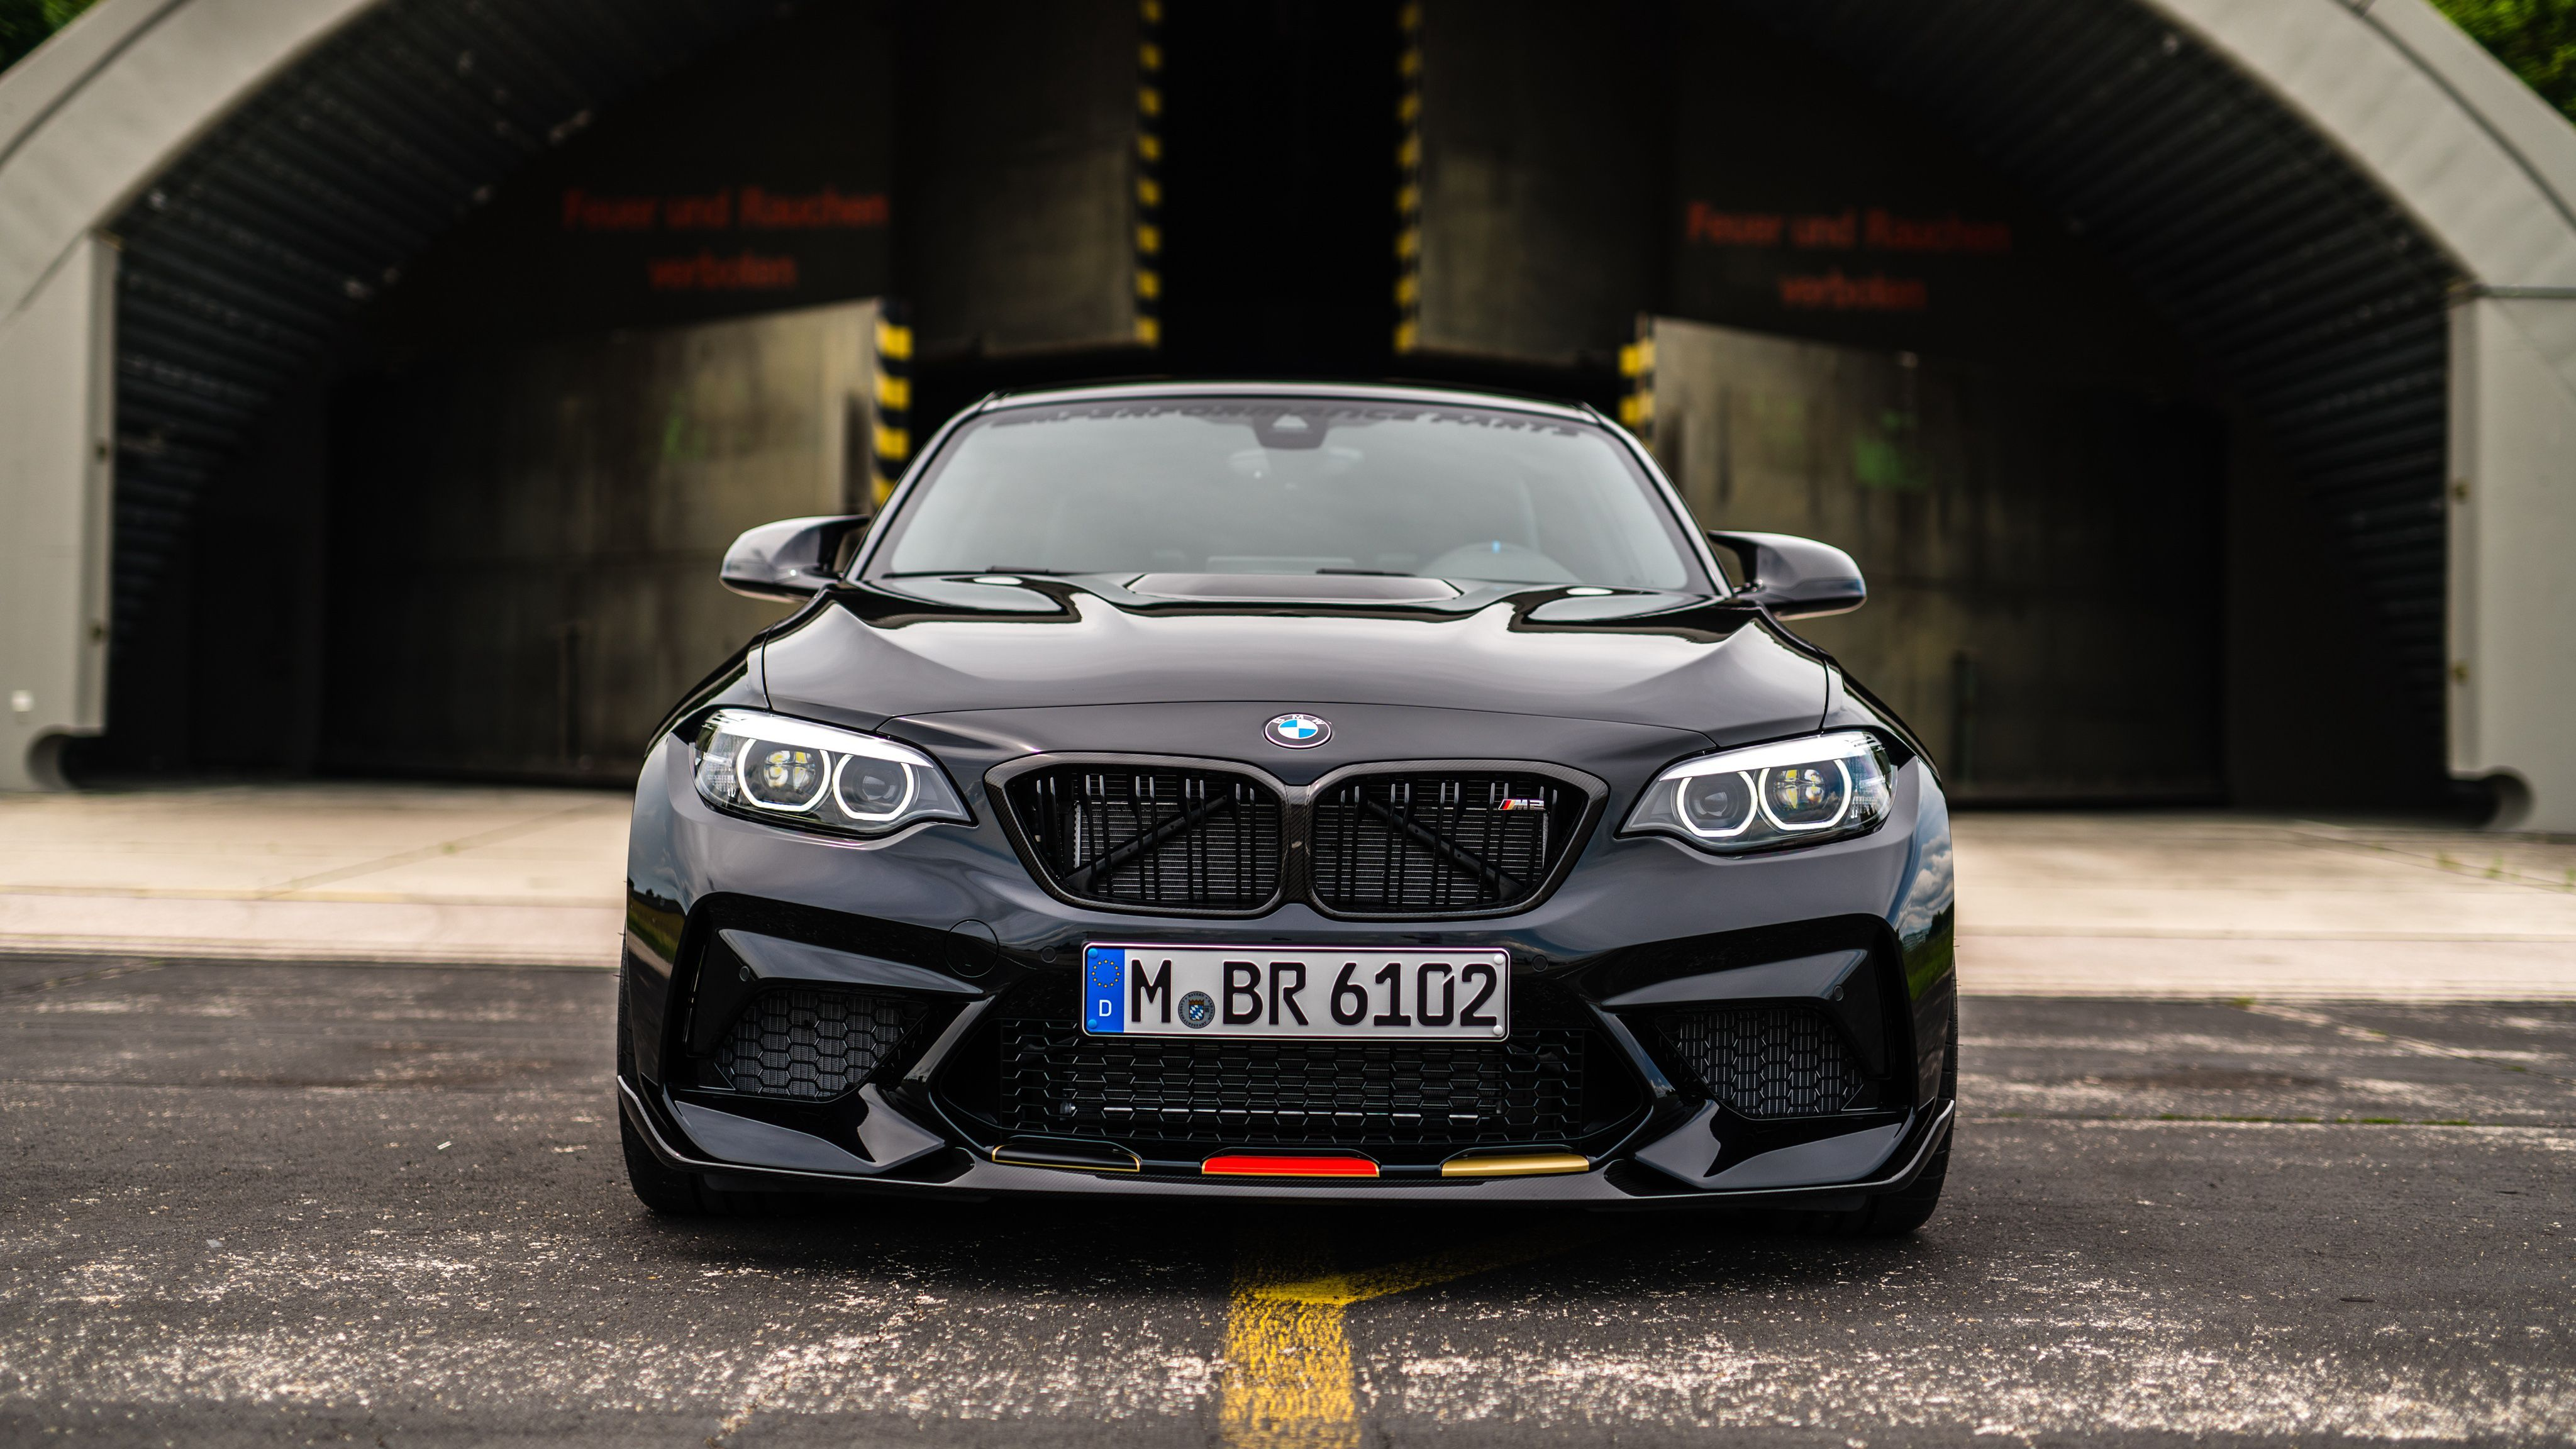 Bmw M2 Competition Wallpapers Top Free Bmw M2 Competition Backgrounds Wallpaperaccess Bmw m2 cs 2019 4k 2 wallpaper